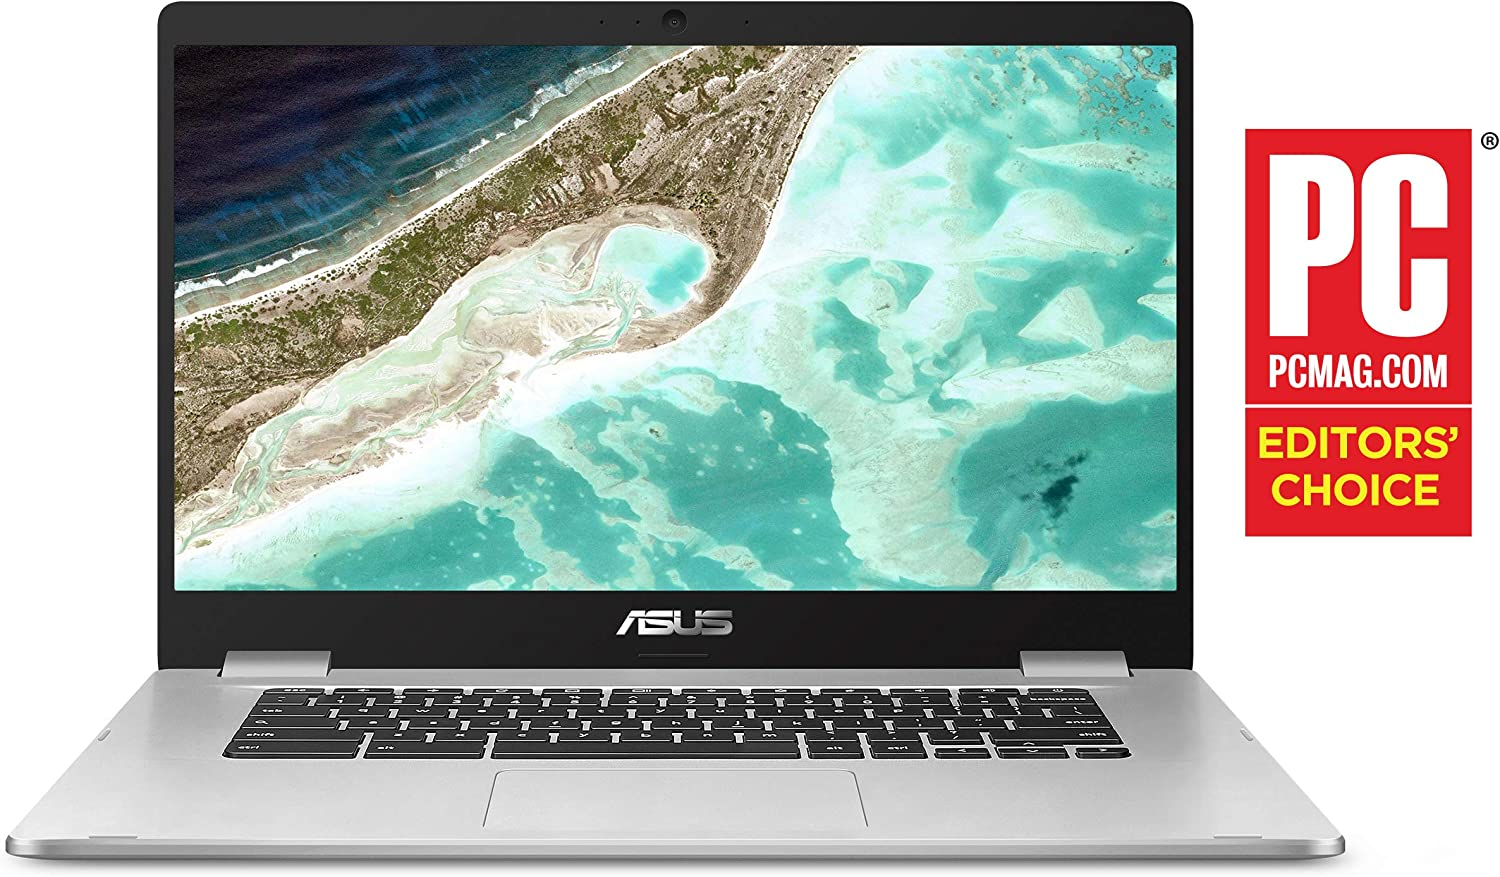 "ASUS Chromebook Laptop- 15.6"" HD Anti-Glare NanoEdge Display, Intel Dual Core Celeron N3350 Processor, 4GB RAM, 64GB eMMC, 180 Degree Hinge, Chrome OS- C523NA-BCLN6 Silver"